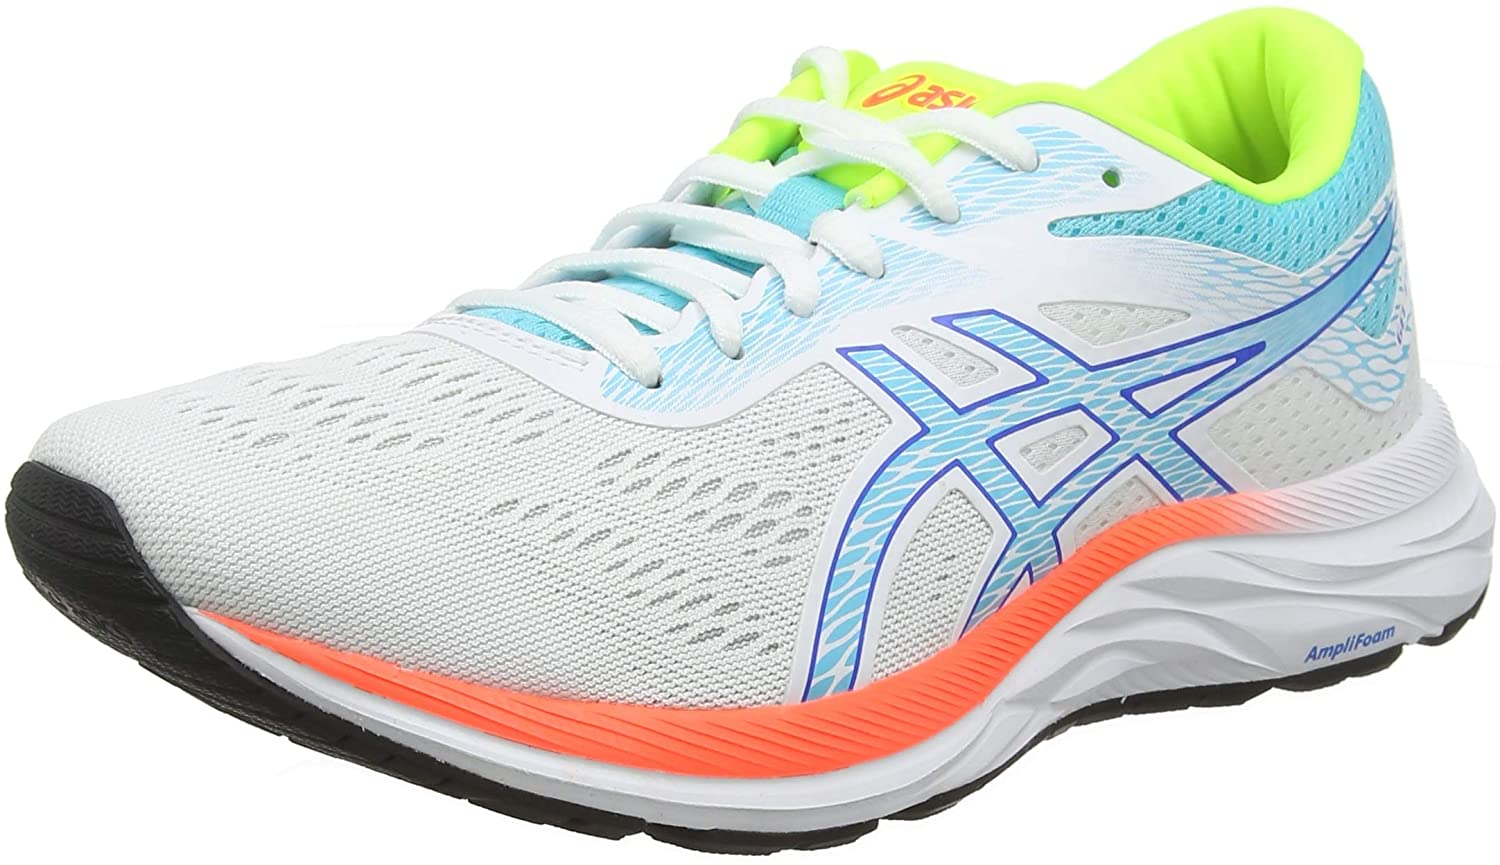 Asics Gel-Excite 6 SP, Zapatillas de Running para Mujer, Multicolor (White/Ice Mint 100), 36 EU: Amazon.es: Zapatos y complementos